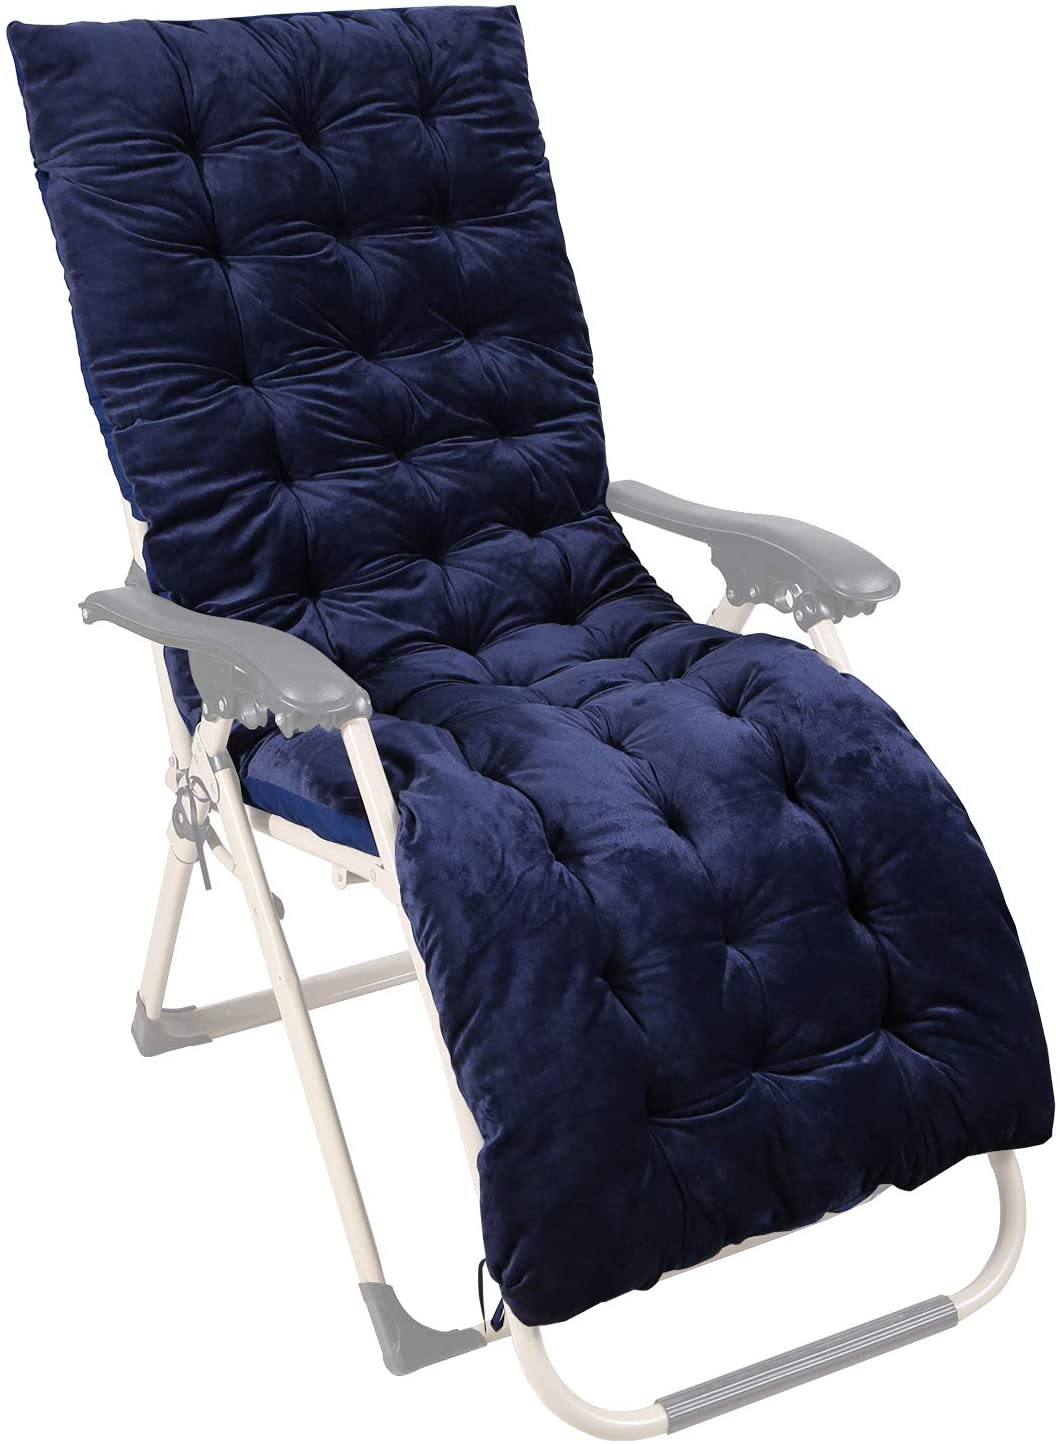 CAMPMOON Patio Lounge Chair Cushion for Outdoor Indoor Furniture, Thick Chaise Lounger Cushions Rocking Chair Mattress, Navy Blue